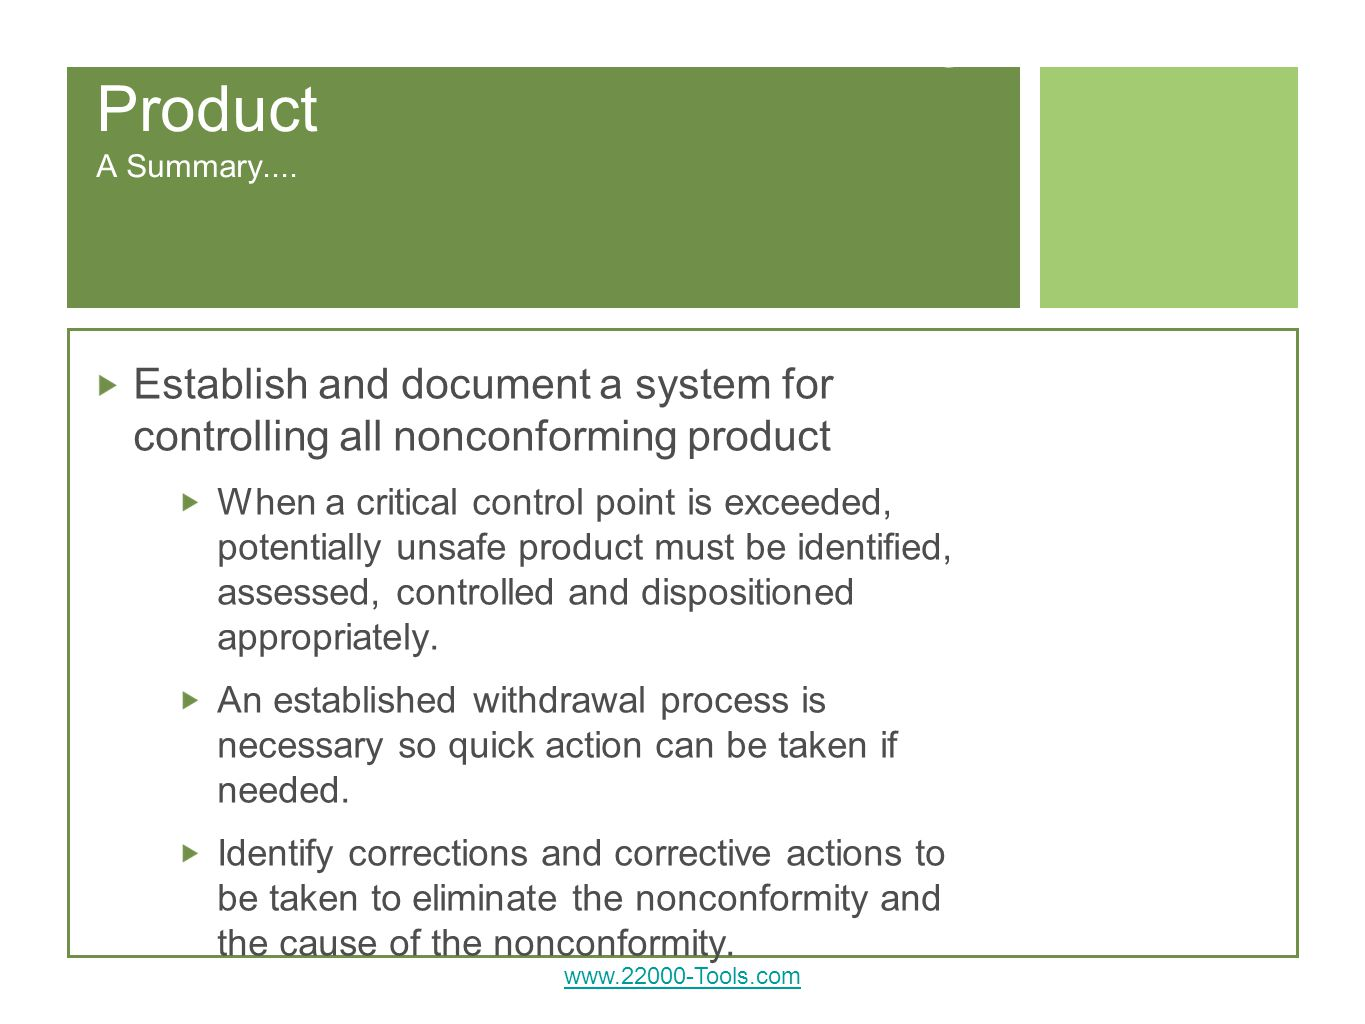 Requirements: Nonconforming Product A Summary....